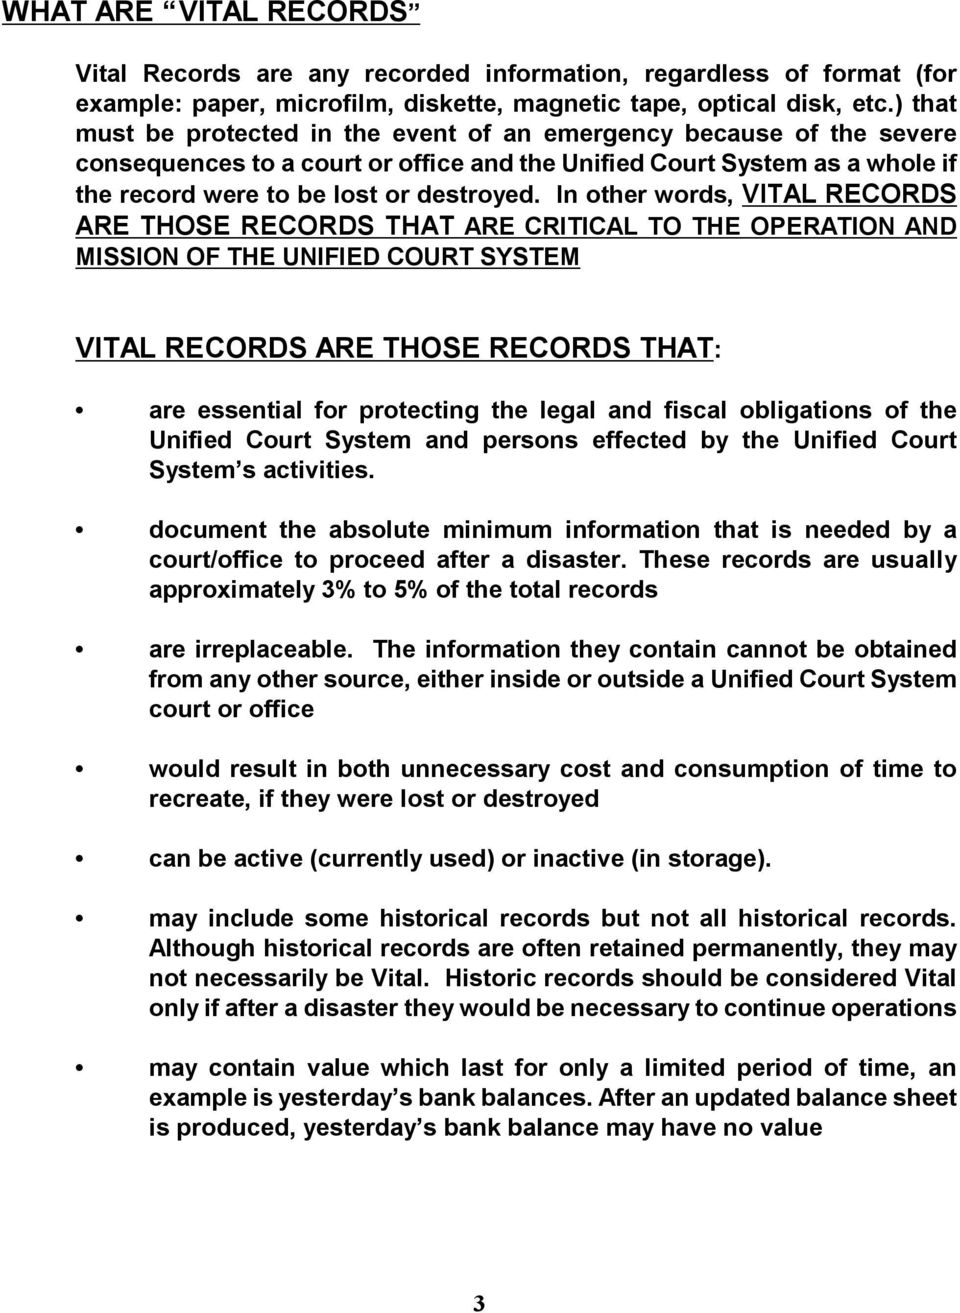 In other words, VITAL RECORDS ARE THOSE RECORDS THAT ARE CRITICAL TO THE OPERATION AND MISSION OF THE UNIFIED COURT SYSTEM VITAL RECORDS ARE THOSE RECORDS THAT: are essential for protecting the legal